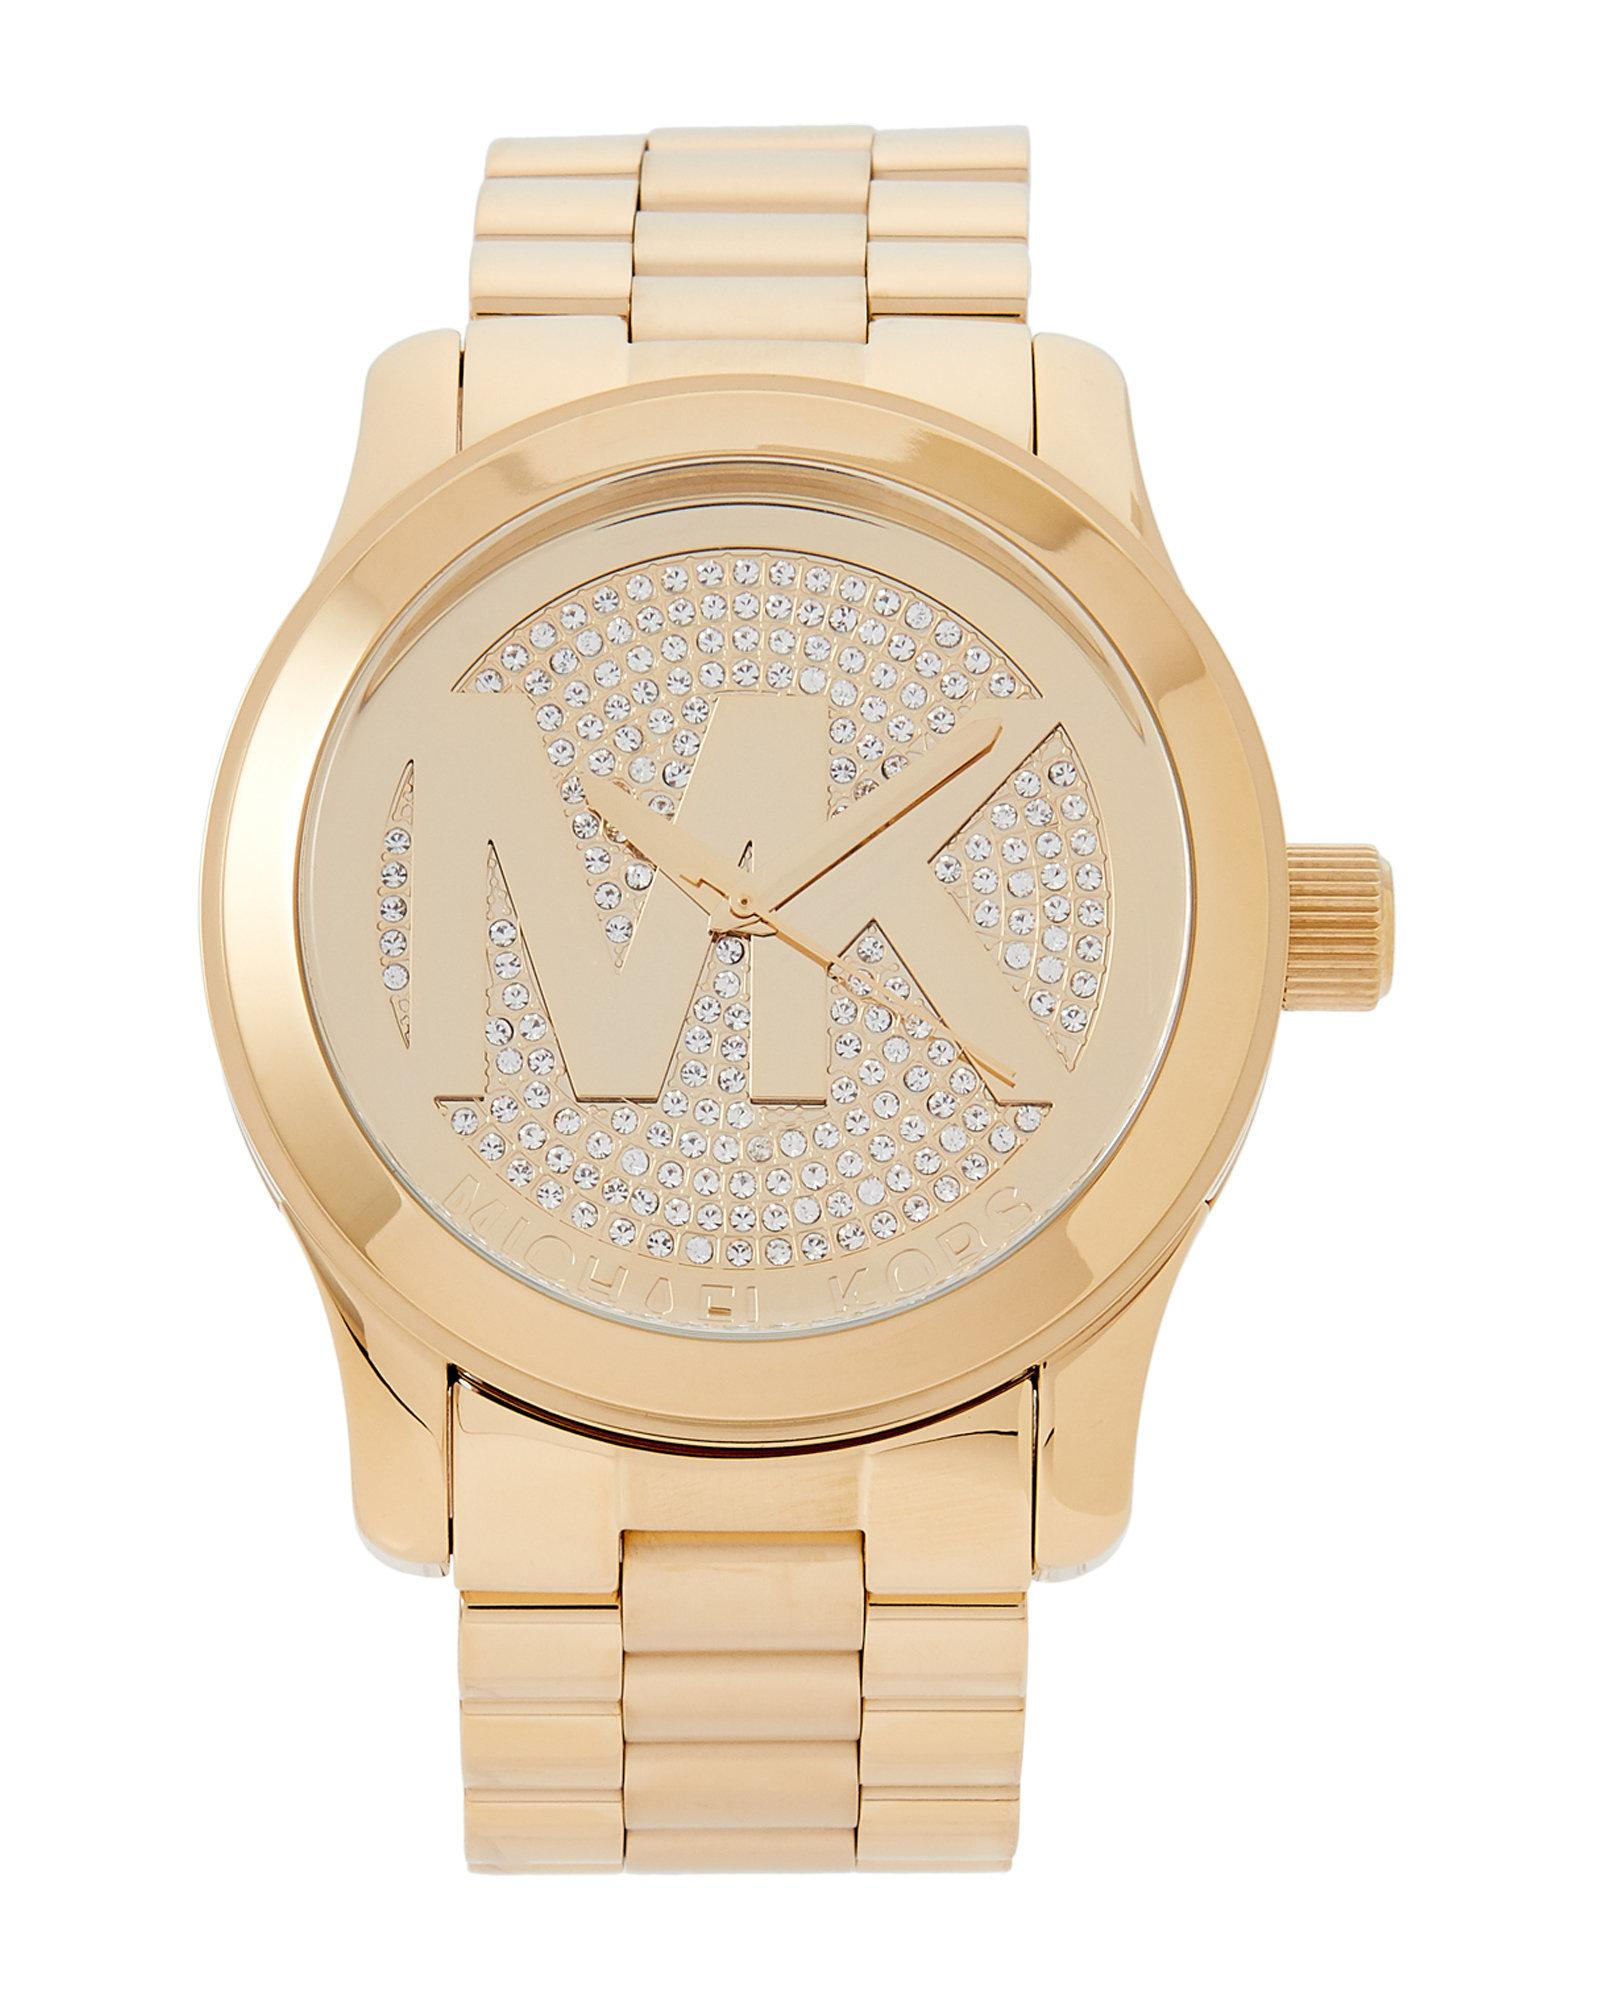 c74cec1f7a95 Gallery. Previously sold at  Century 21 · Women s Gold Watches ...